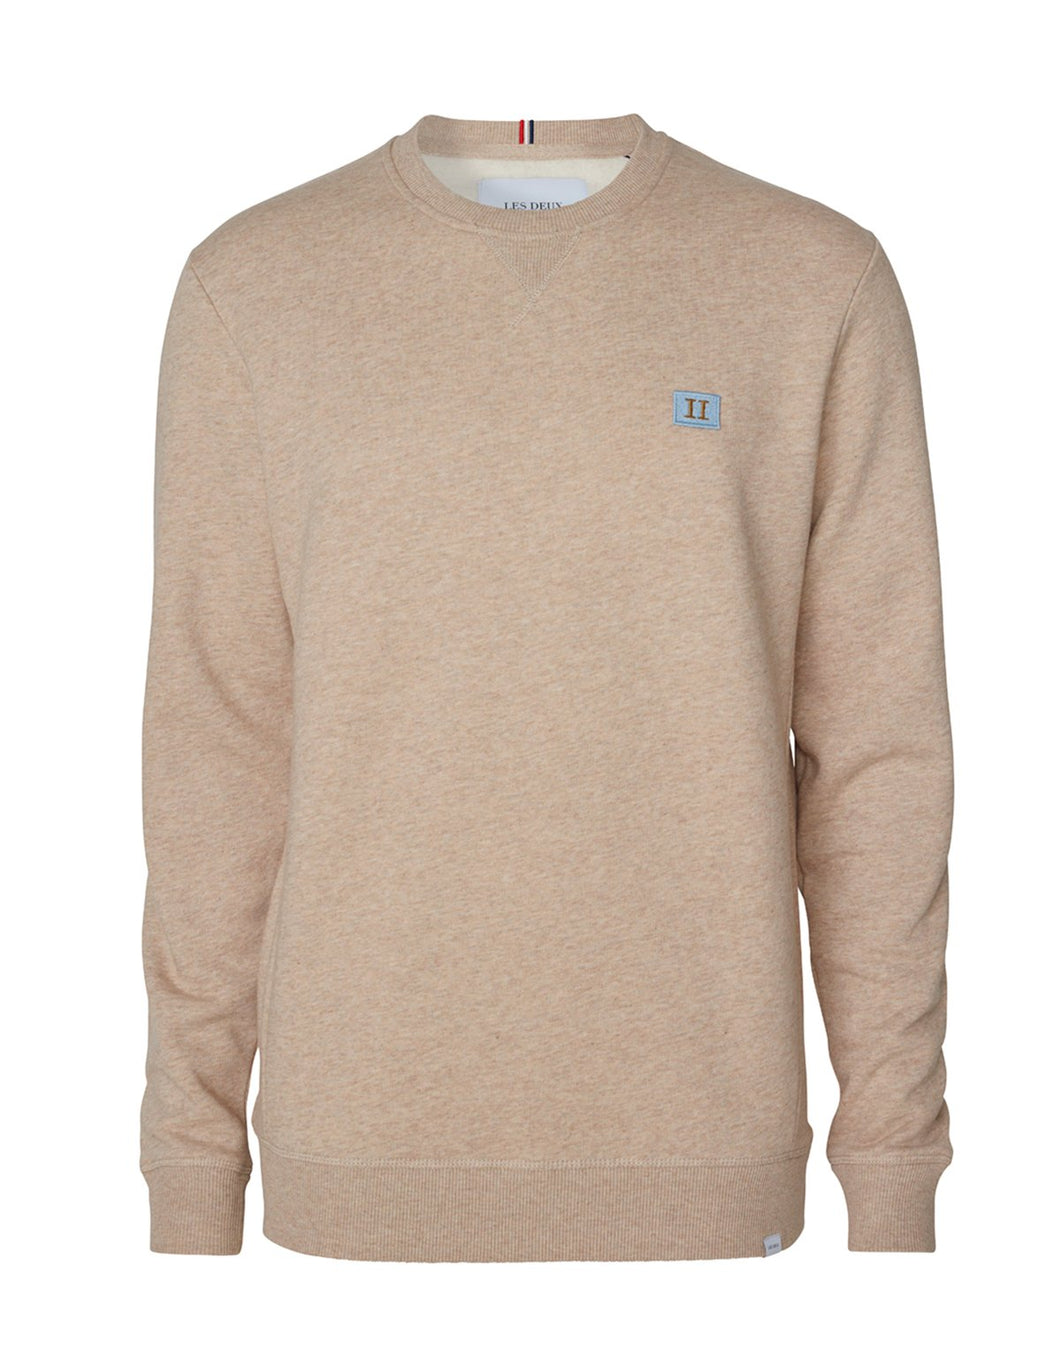 Les Deux Piece Sweat -Light Brown Melange/Dust Blue-Stone Brown